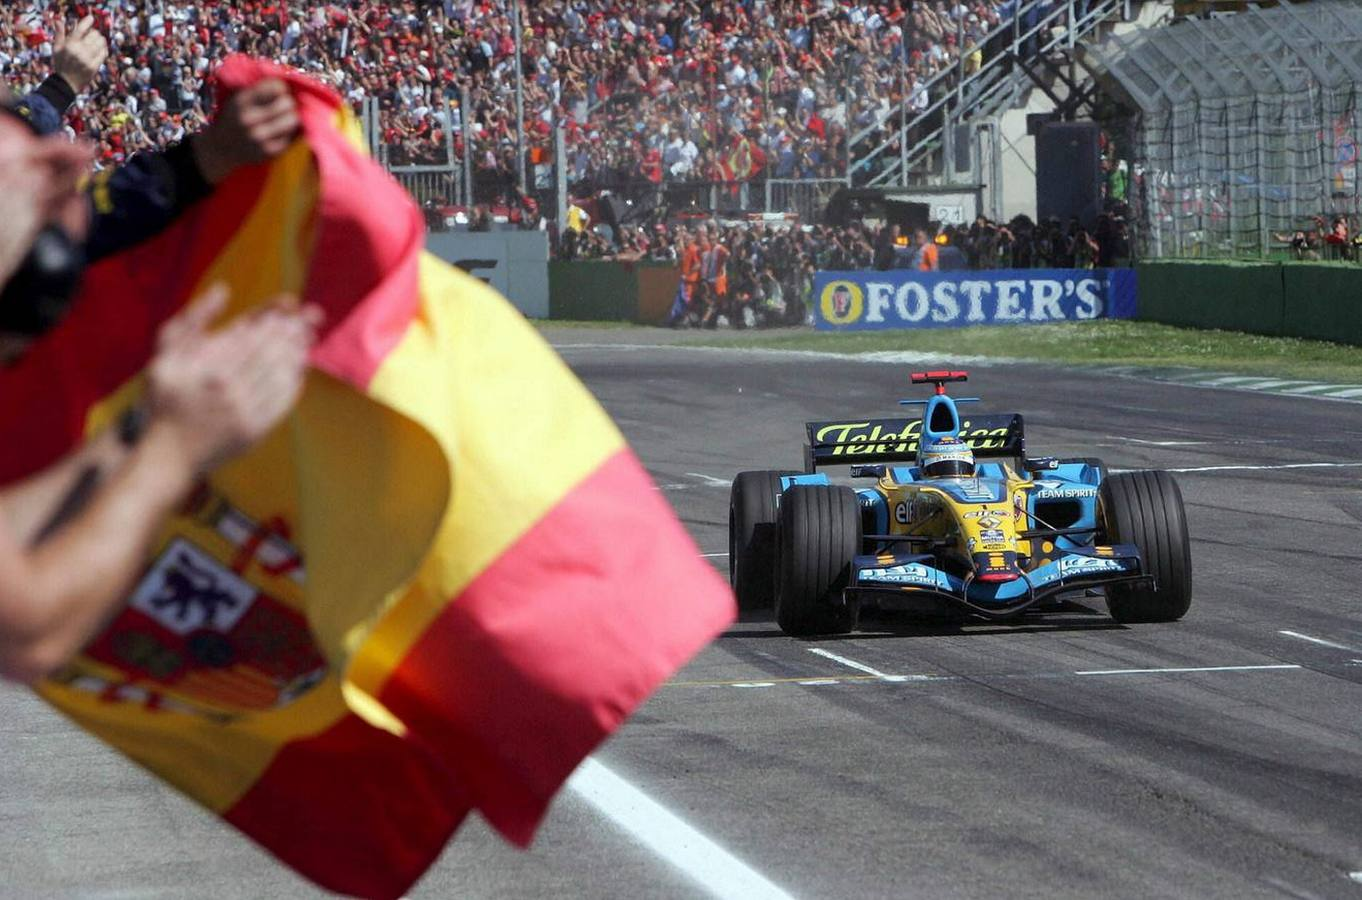 Fernando Alonso, una carrera espectacular